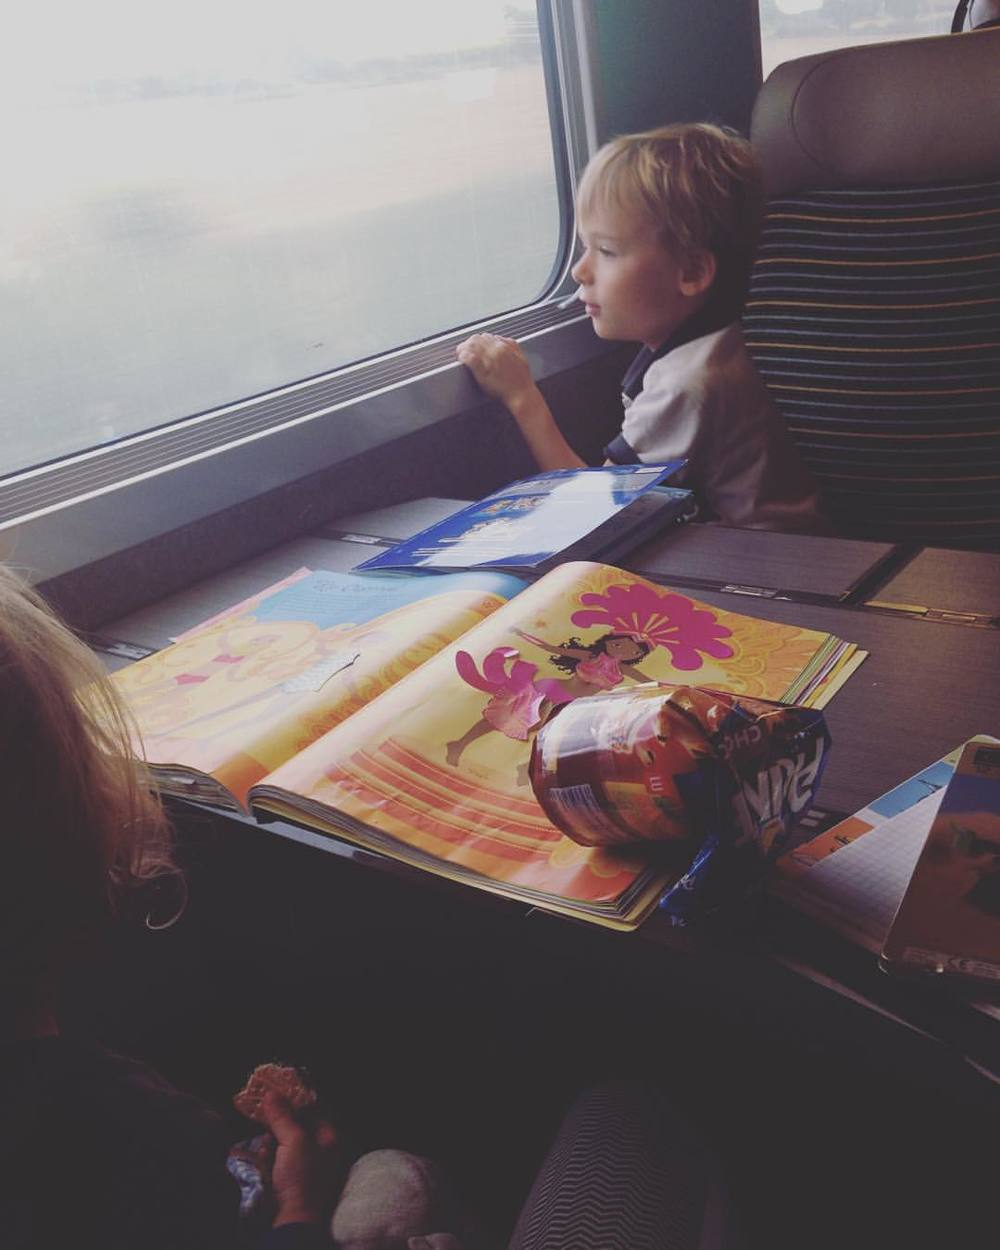 On the train back to Pari-  I've traveled with these cuties for the past two months around France on their summer holidays. Gonna suck if I have to say goodbye. 👫👭